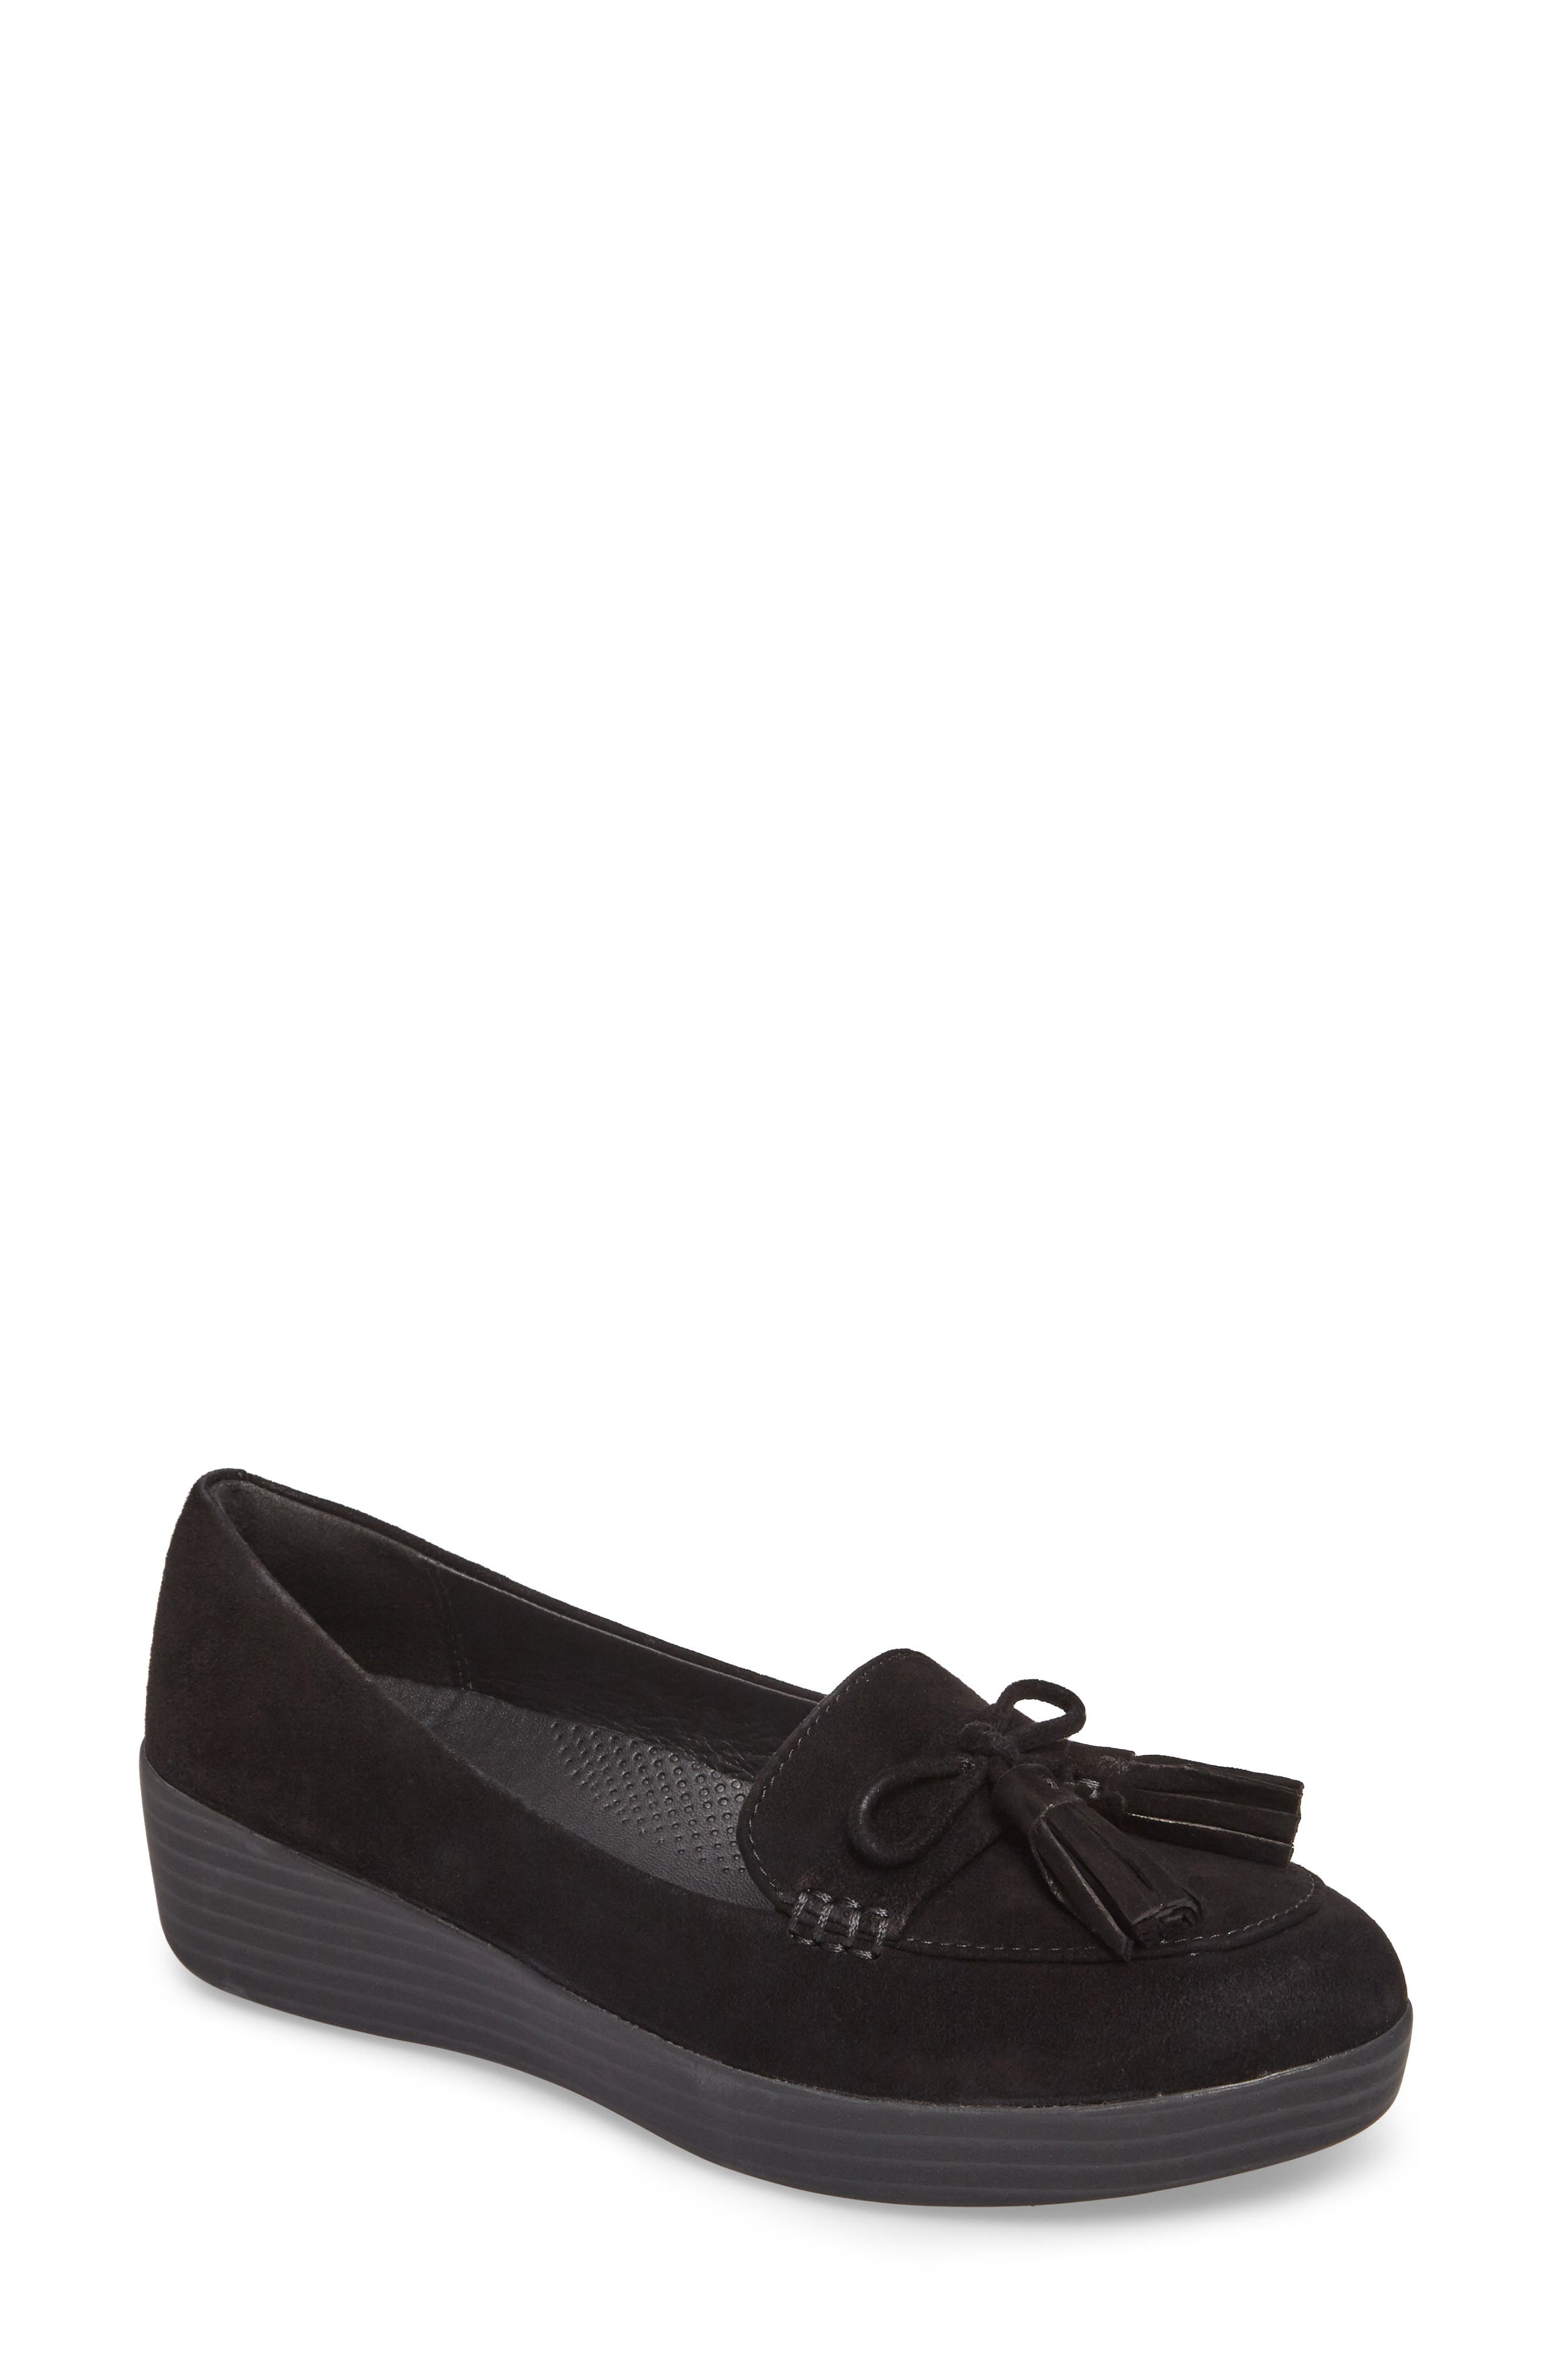 Tassel Bow Sneakerloafer<sup>™</sup> Water Repellent Flat, Main, color, 001